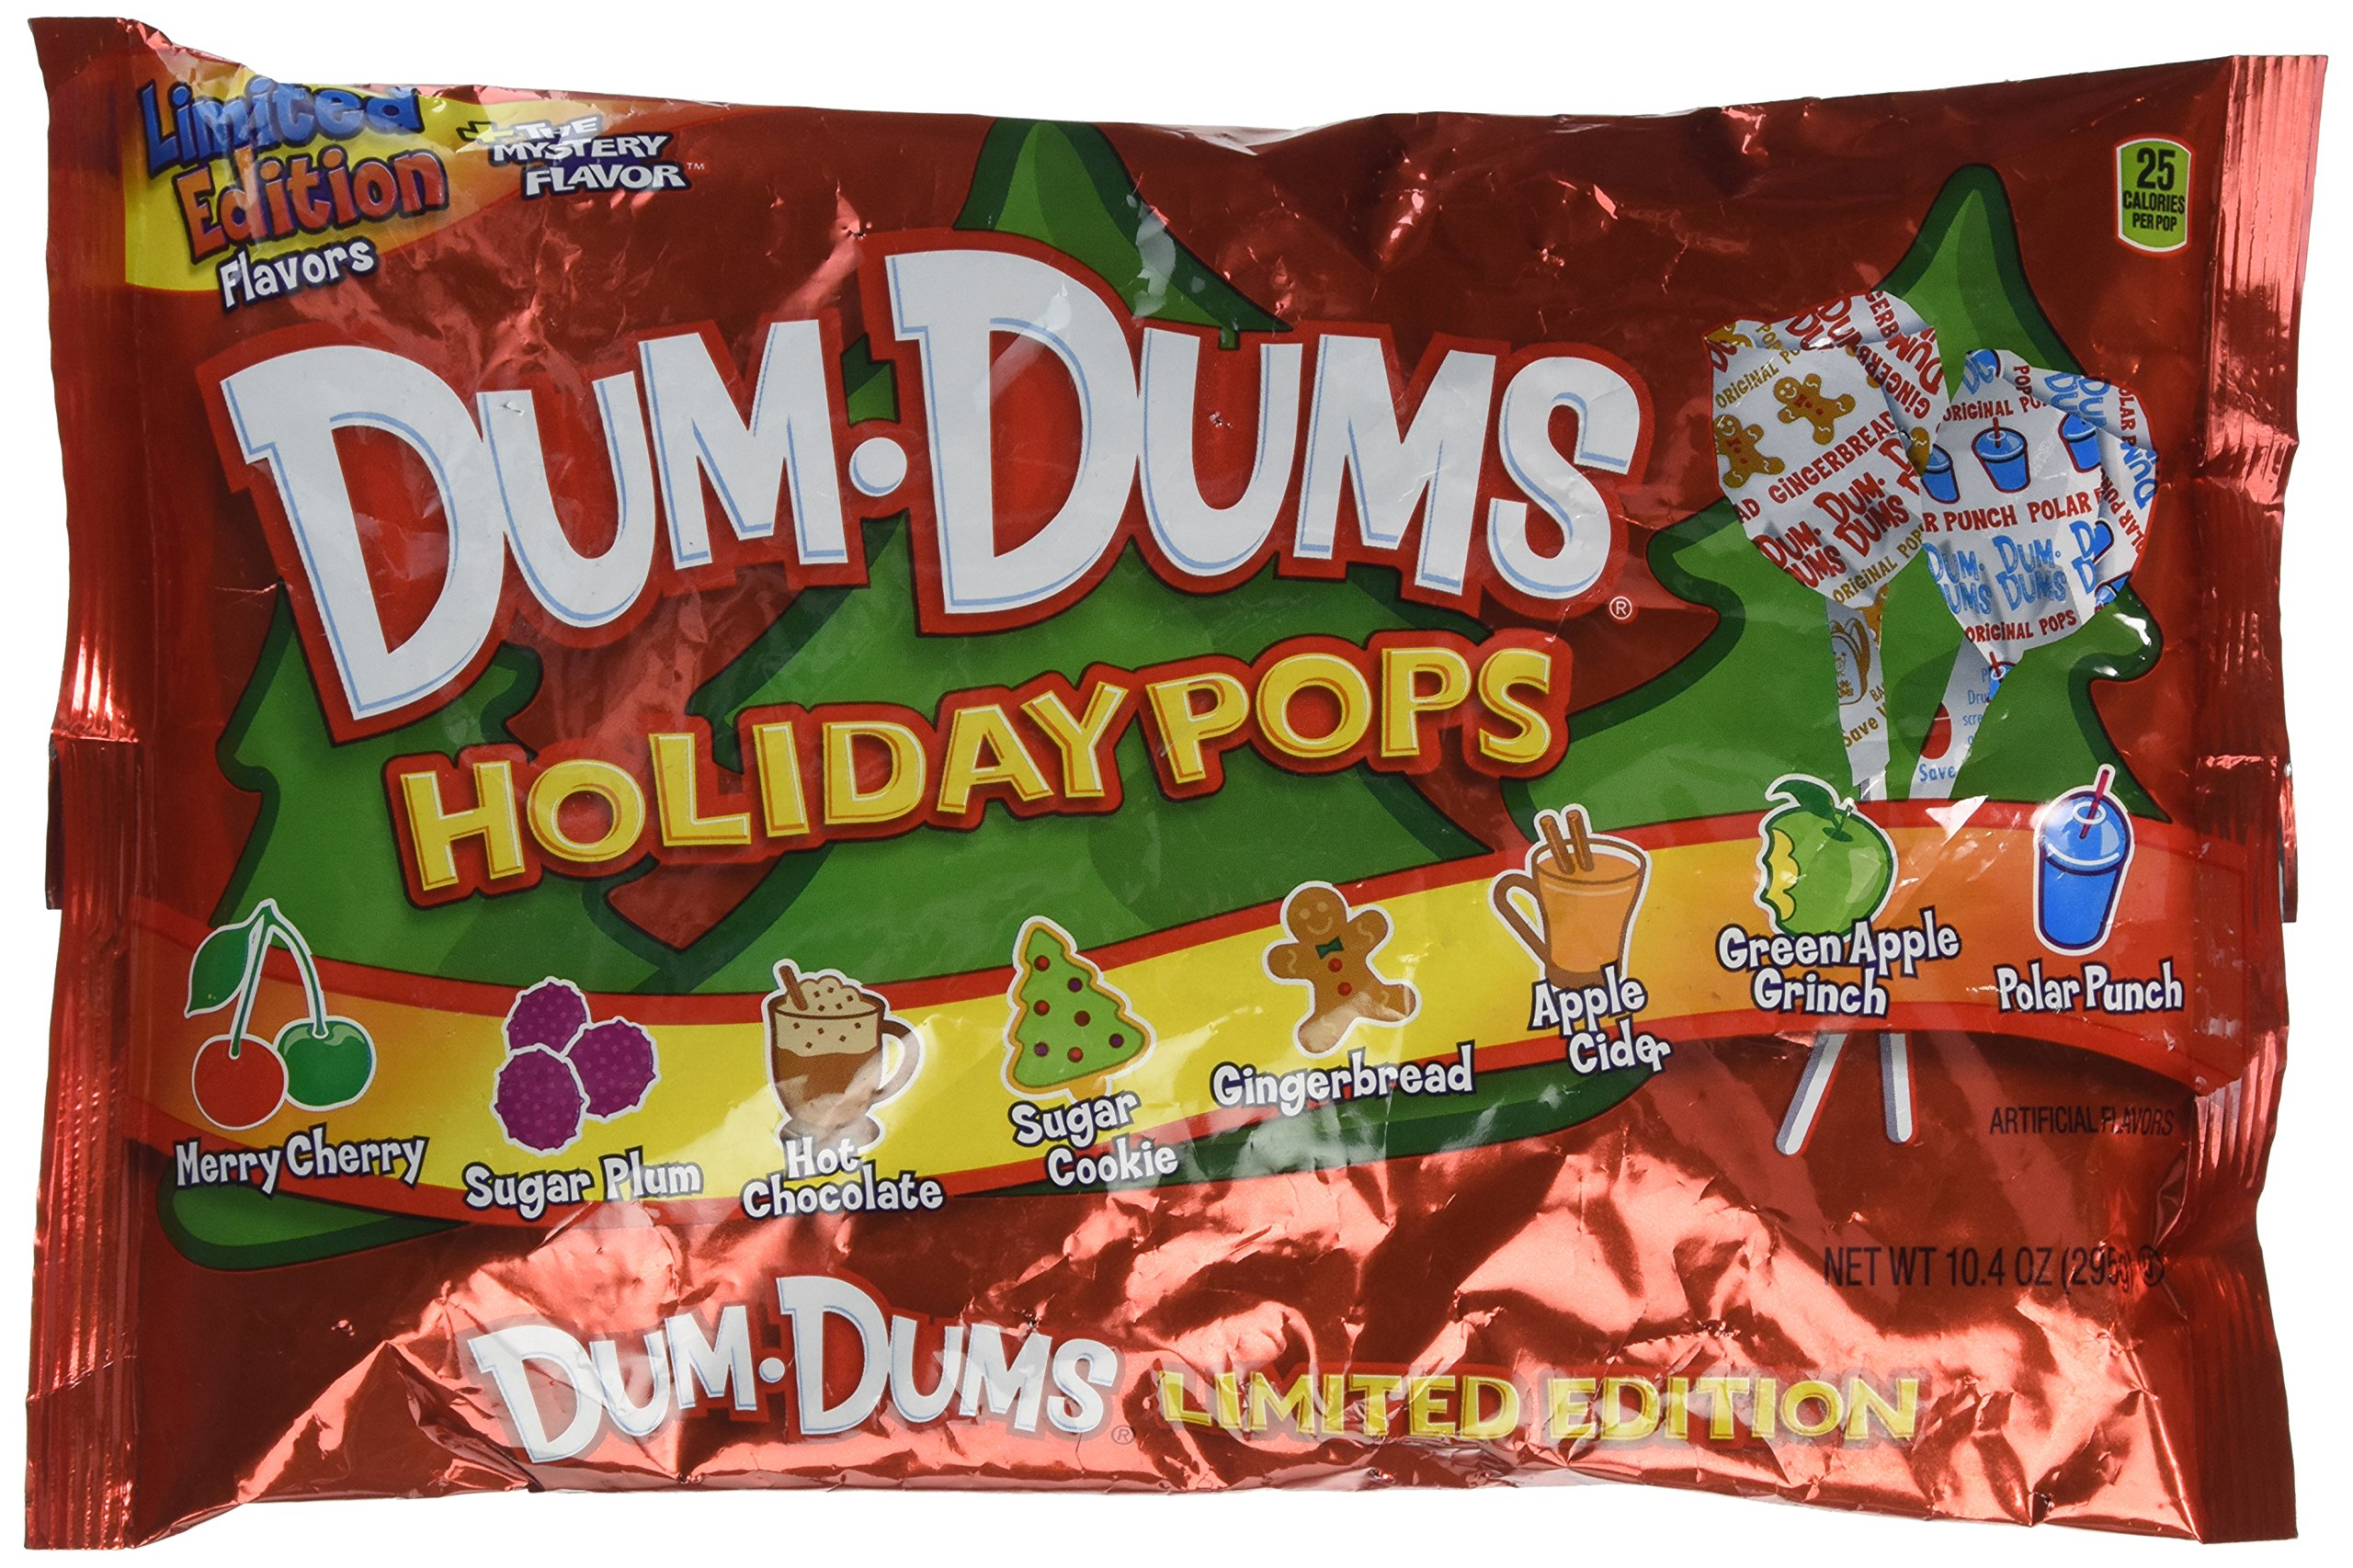 Dum dums prizes for teens